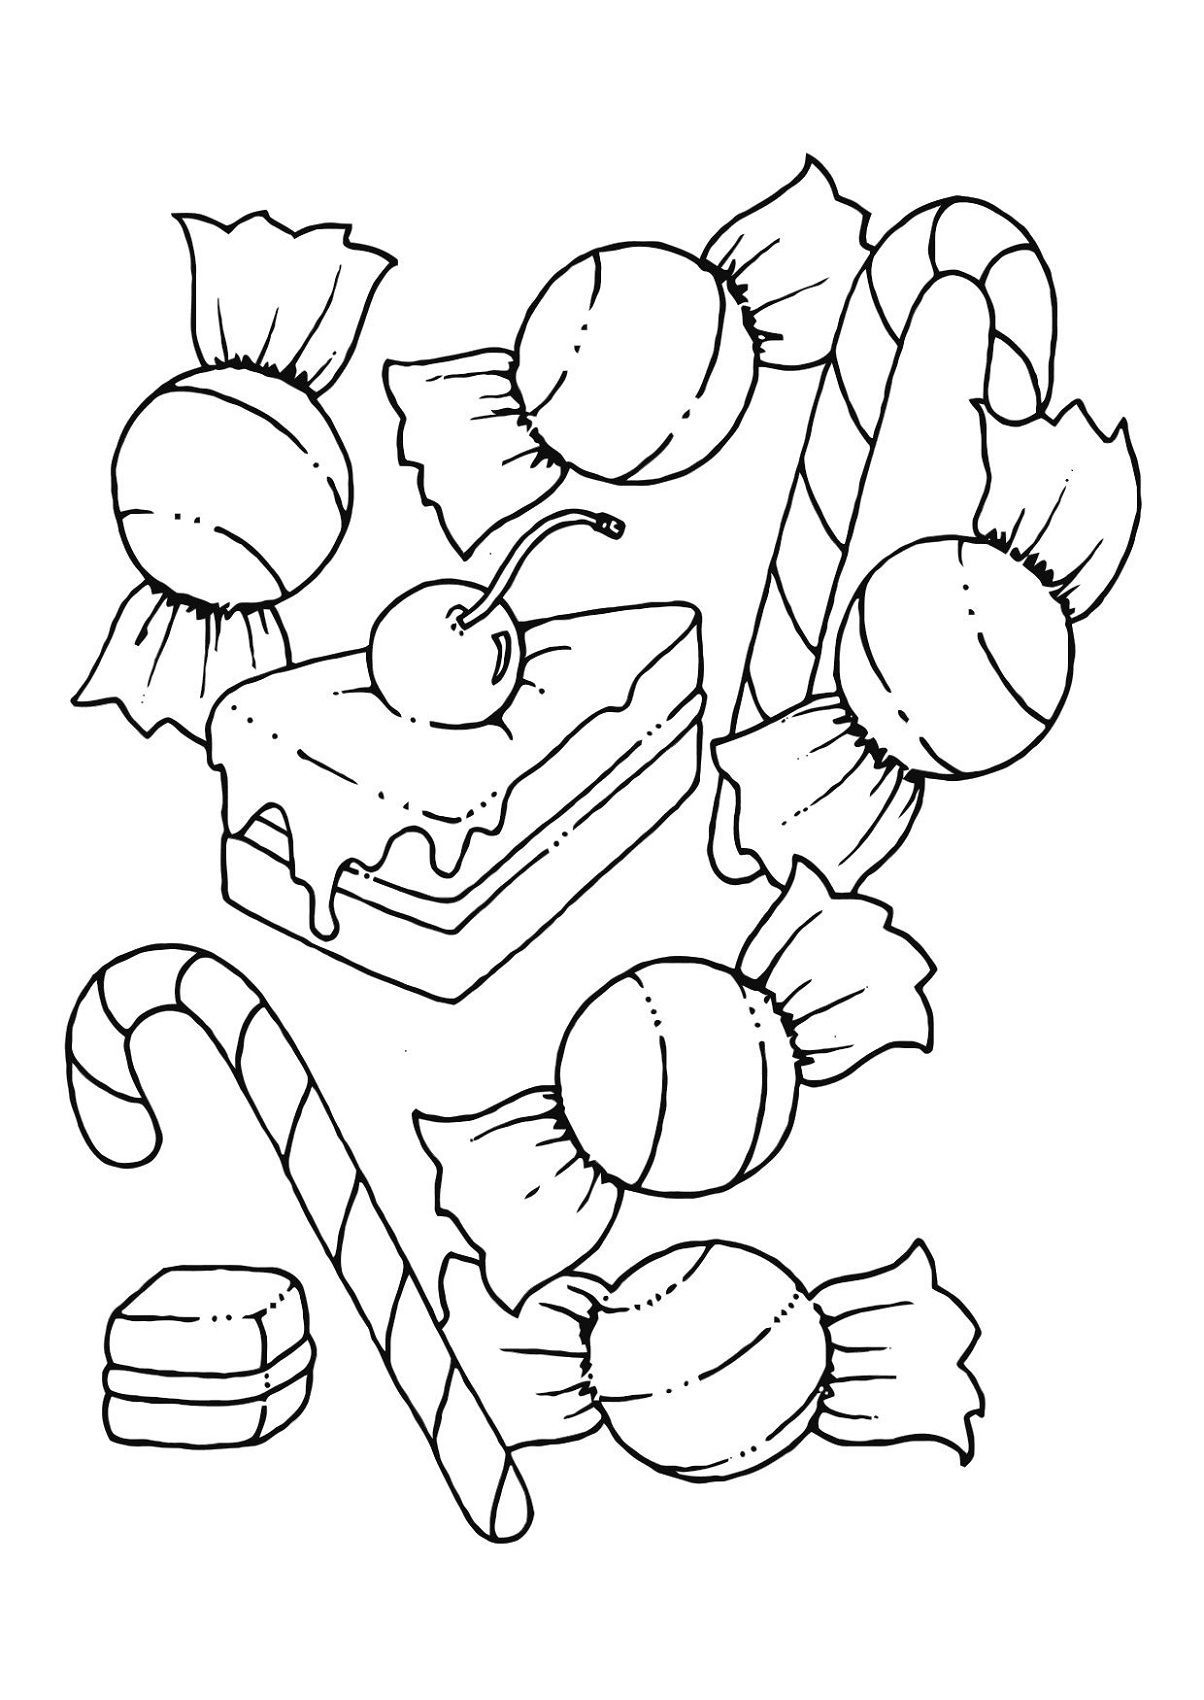 Candyland Coloring Pages For Kids Candy Coloring Pages Food Coloring Pages Coloring Pages